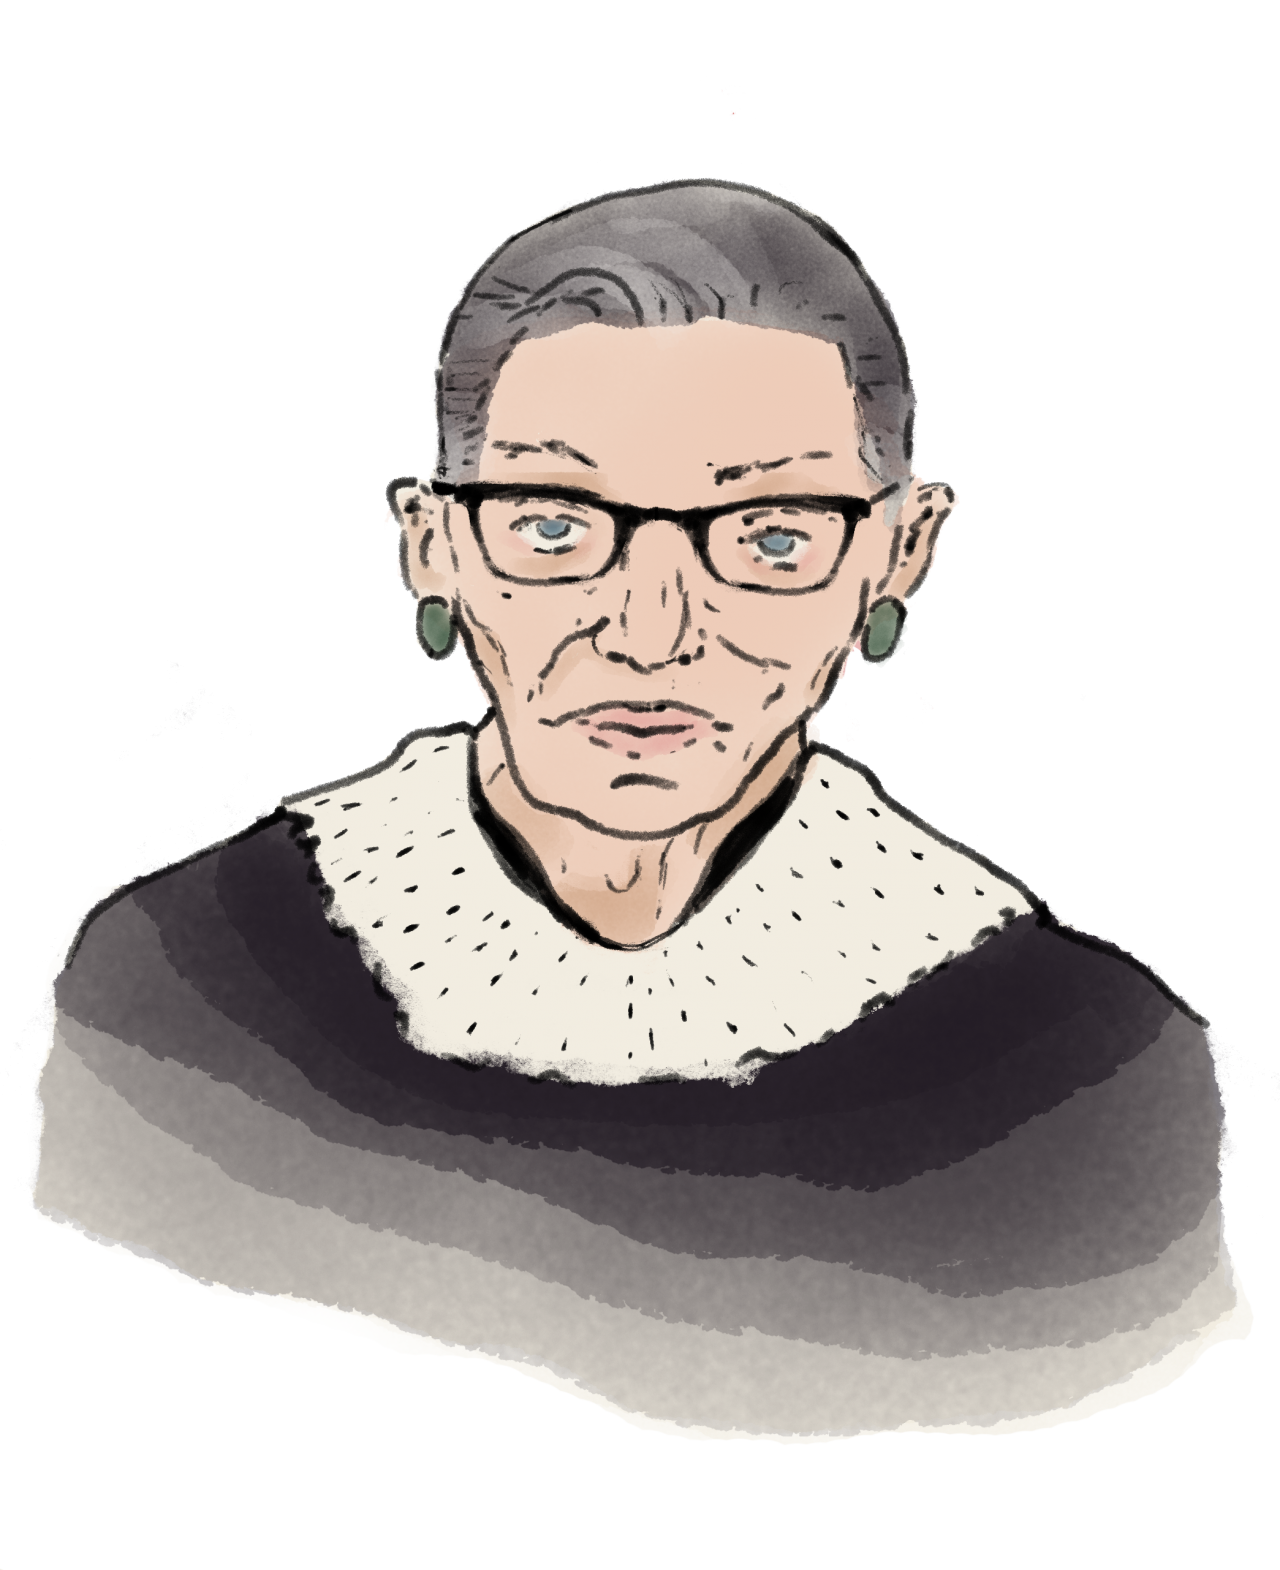 Memorializing RBG through intersectional feminism